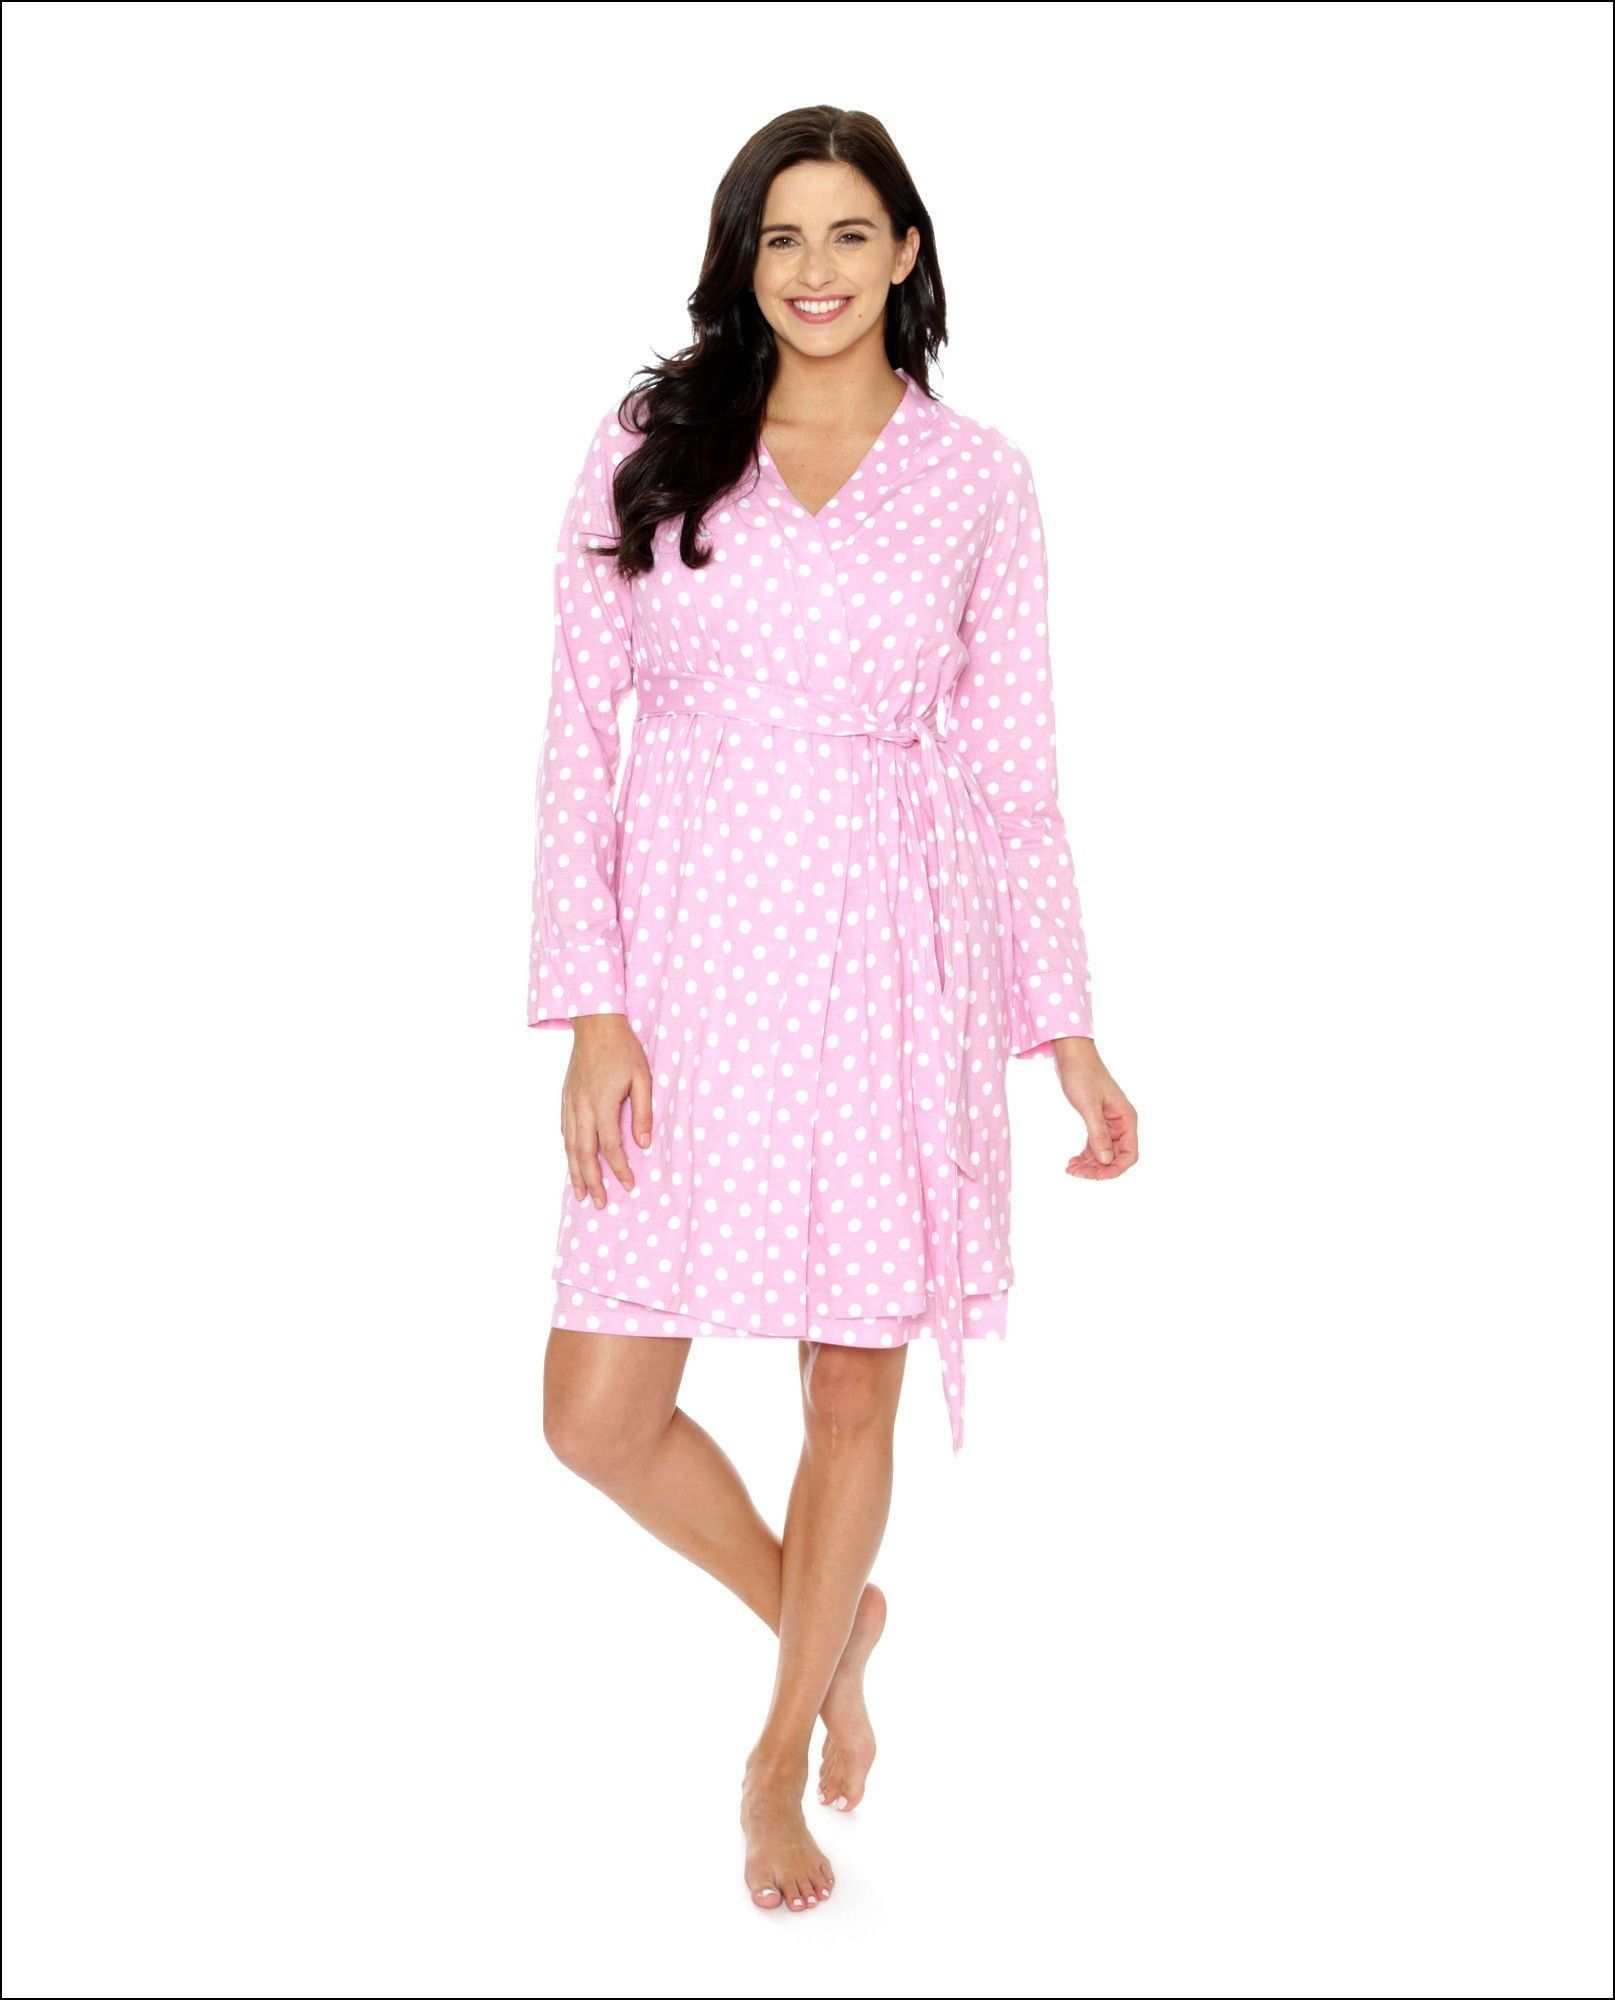 Nursing Gowns for Hospital Stay | Dresses and Gowns Ideas ...